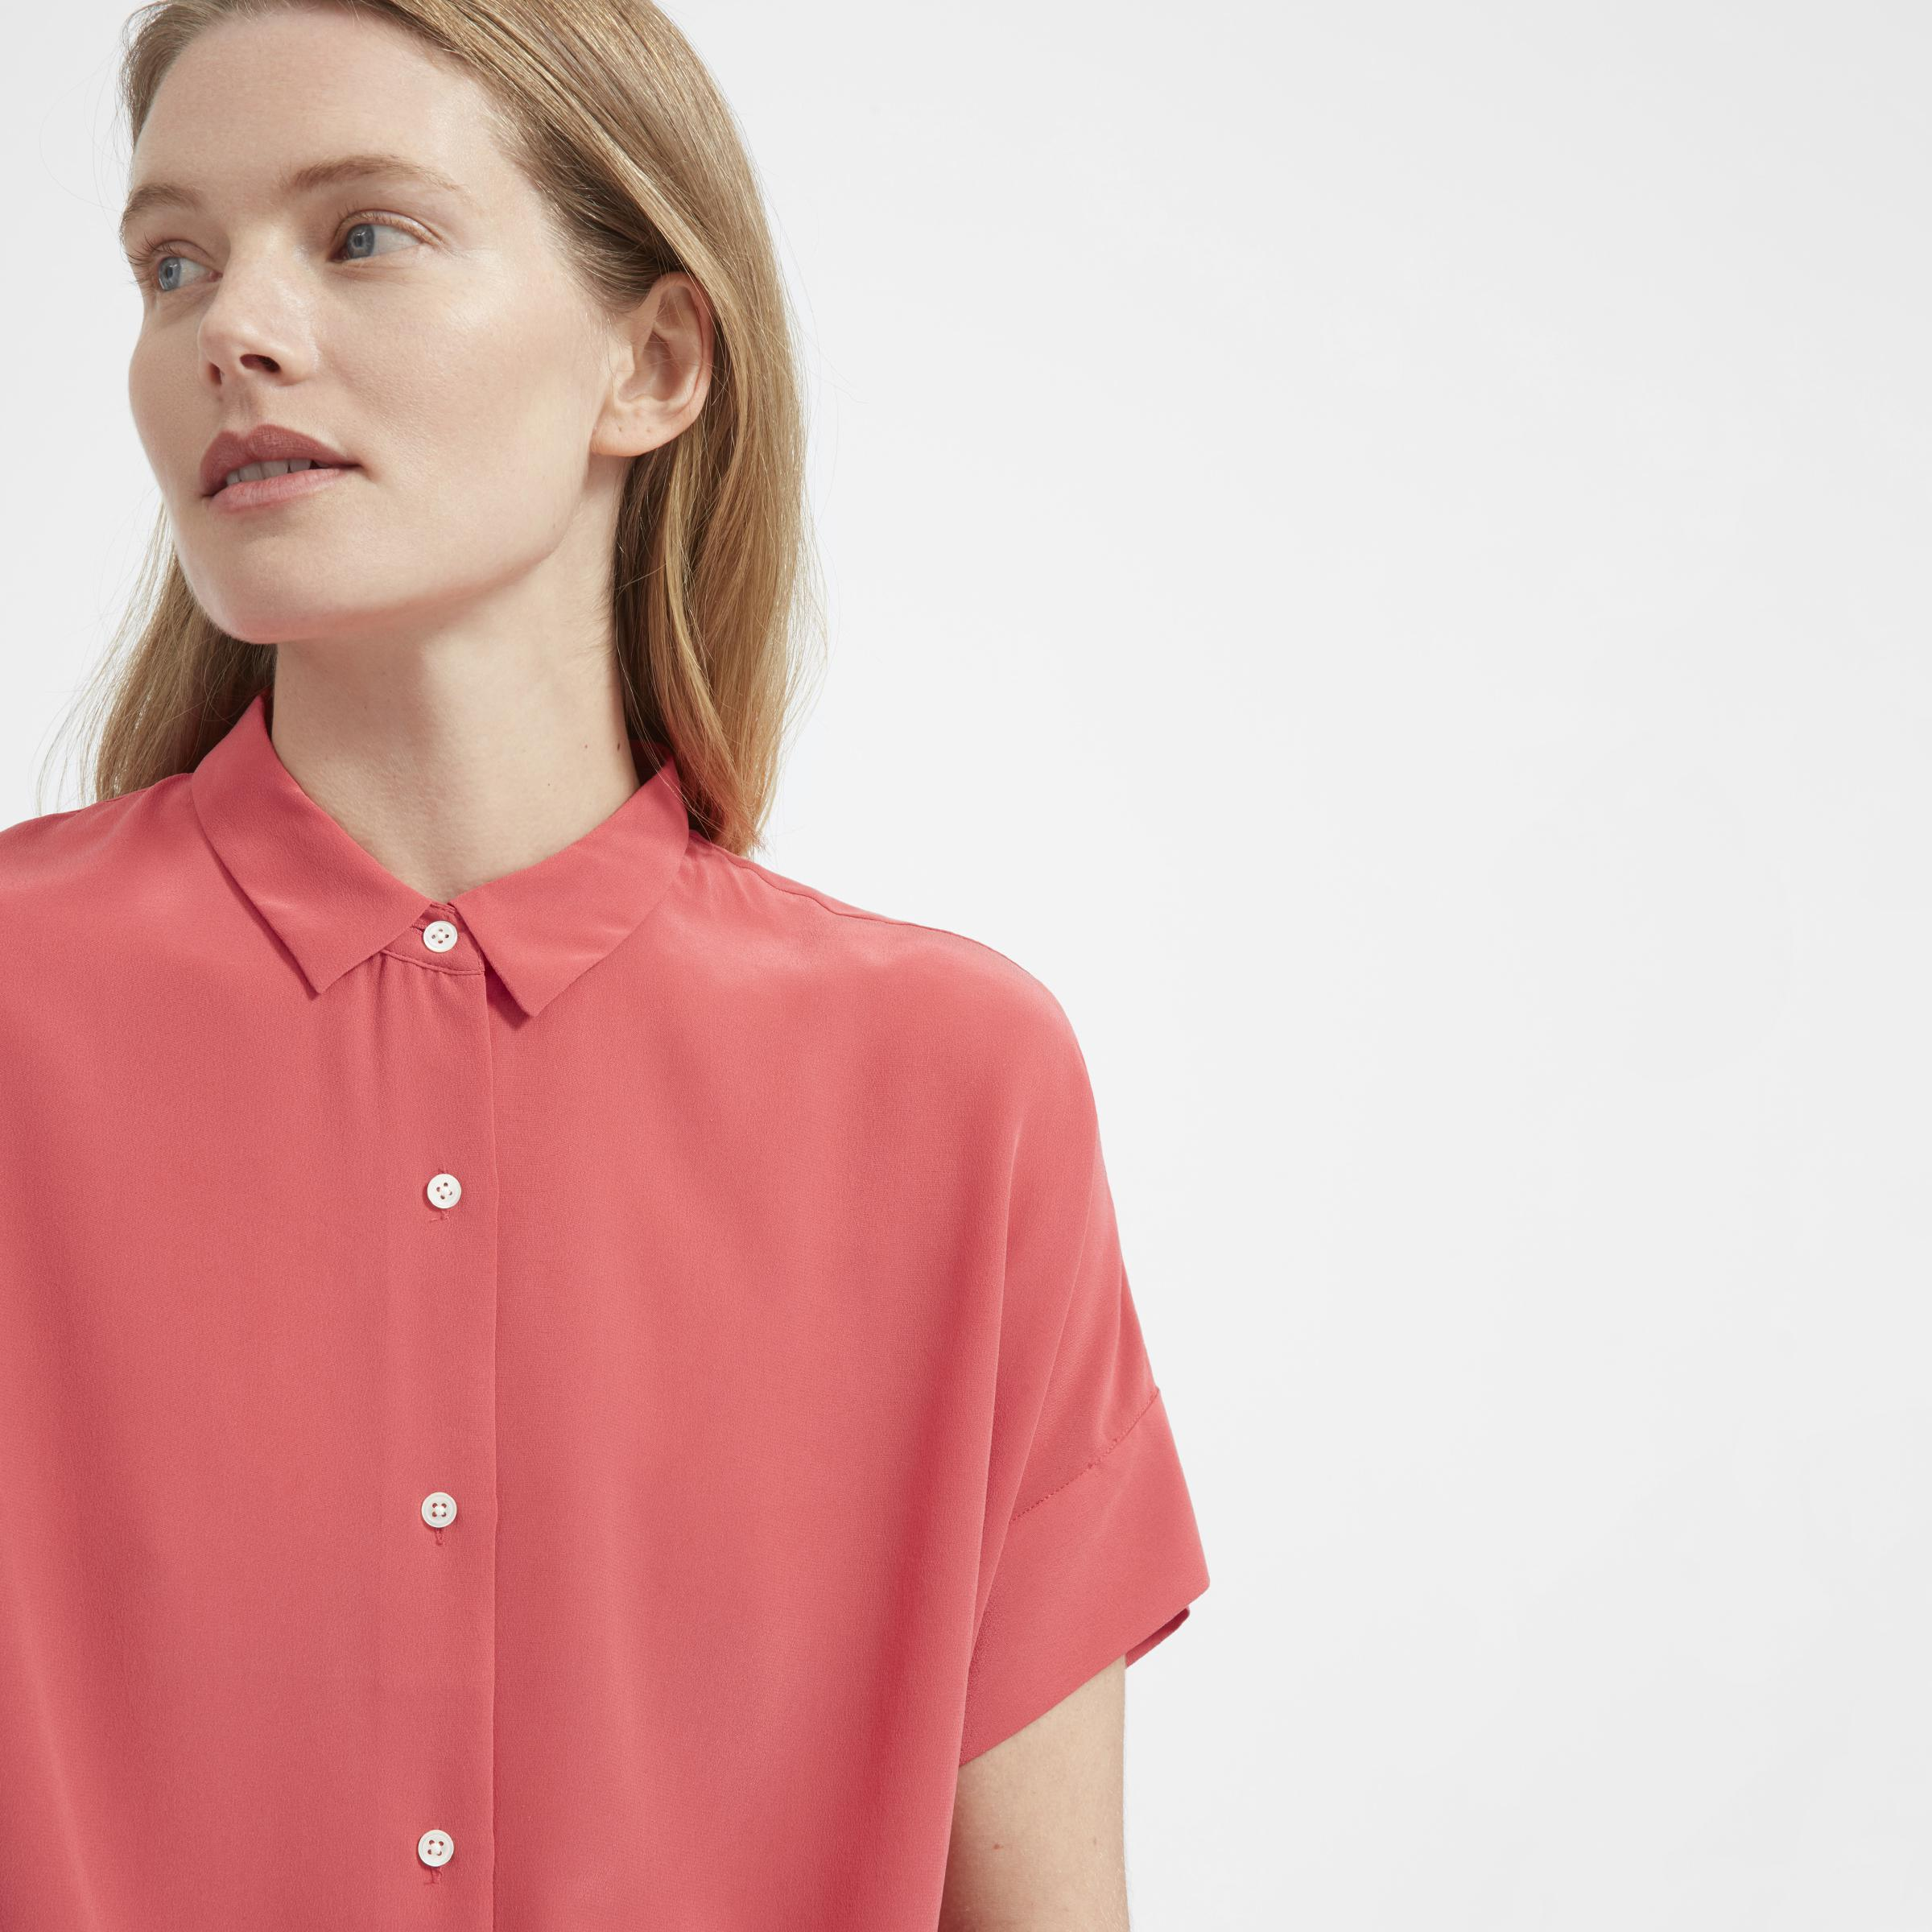 737df95794896 Lyst - Everlane The Silk Square Shirt